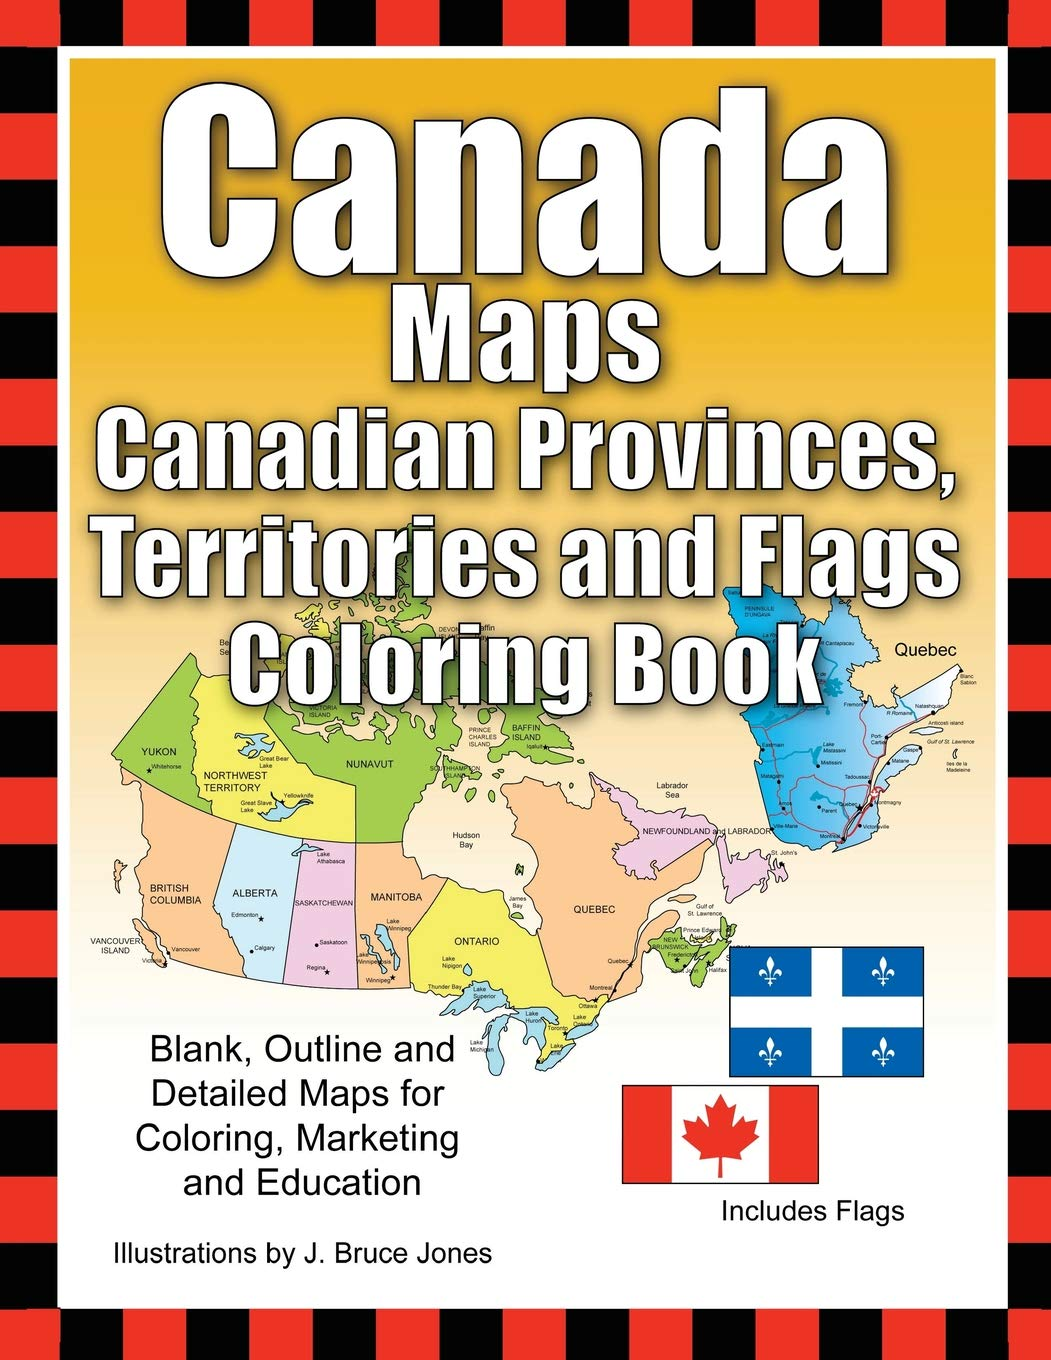 Blank Map Of Canada Provinces And Territories.Amazon Com Canada Maps Canadian Provinces Territories And Flags